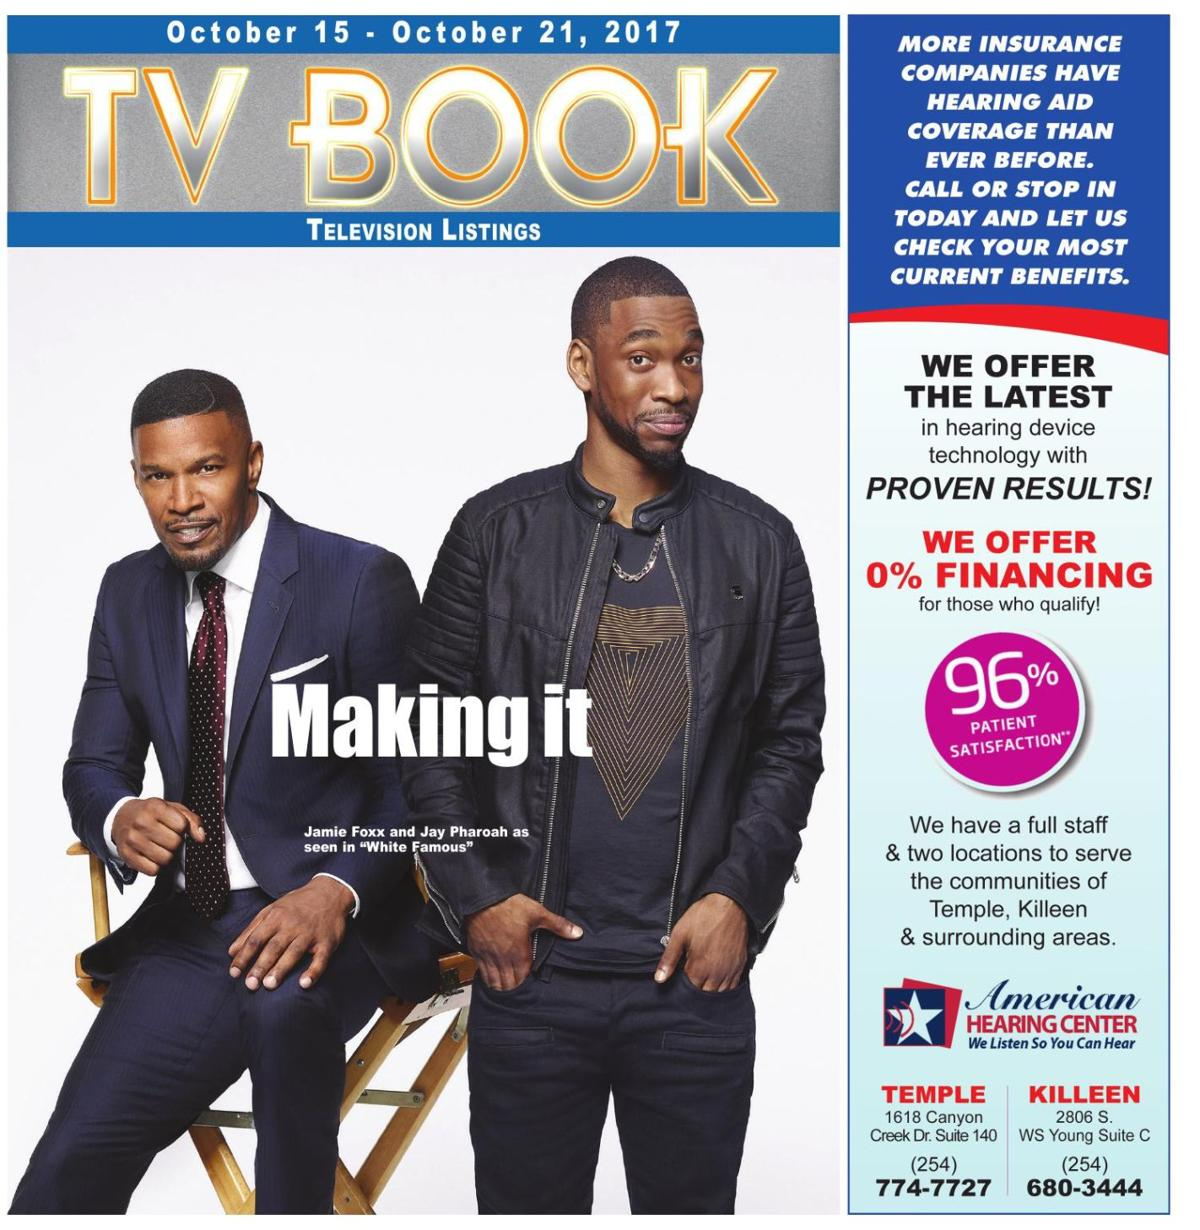 TV Book October 15th - 21st